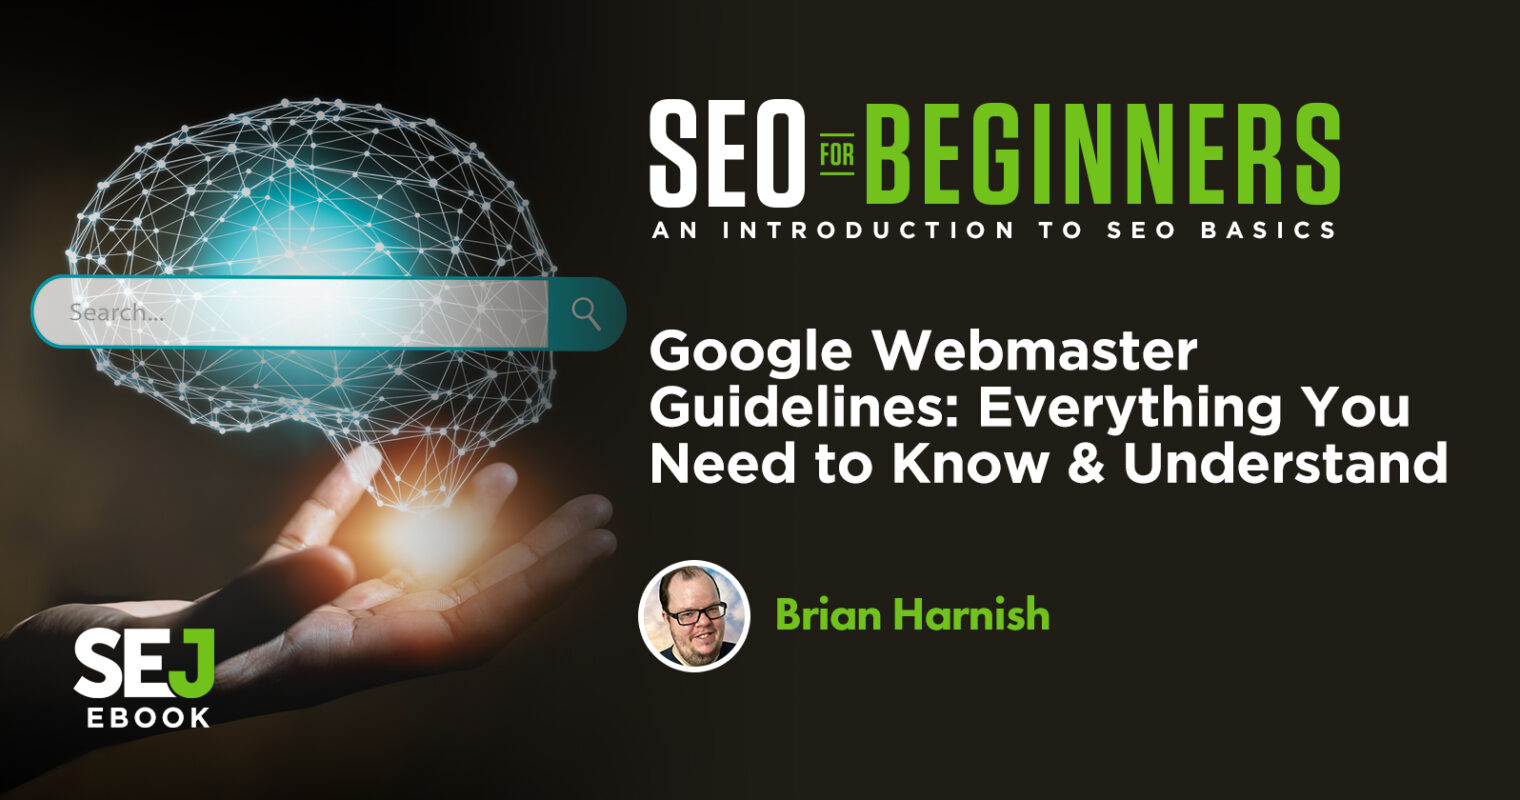 Google Webmaster Guidelines: Everything You Need to Know & Understand